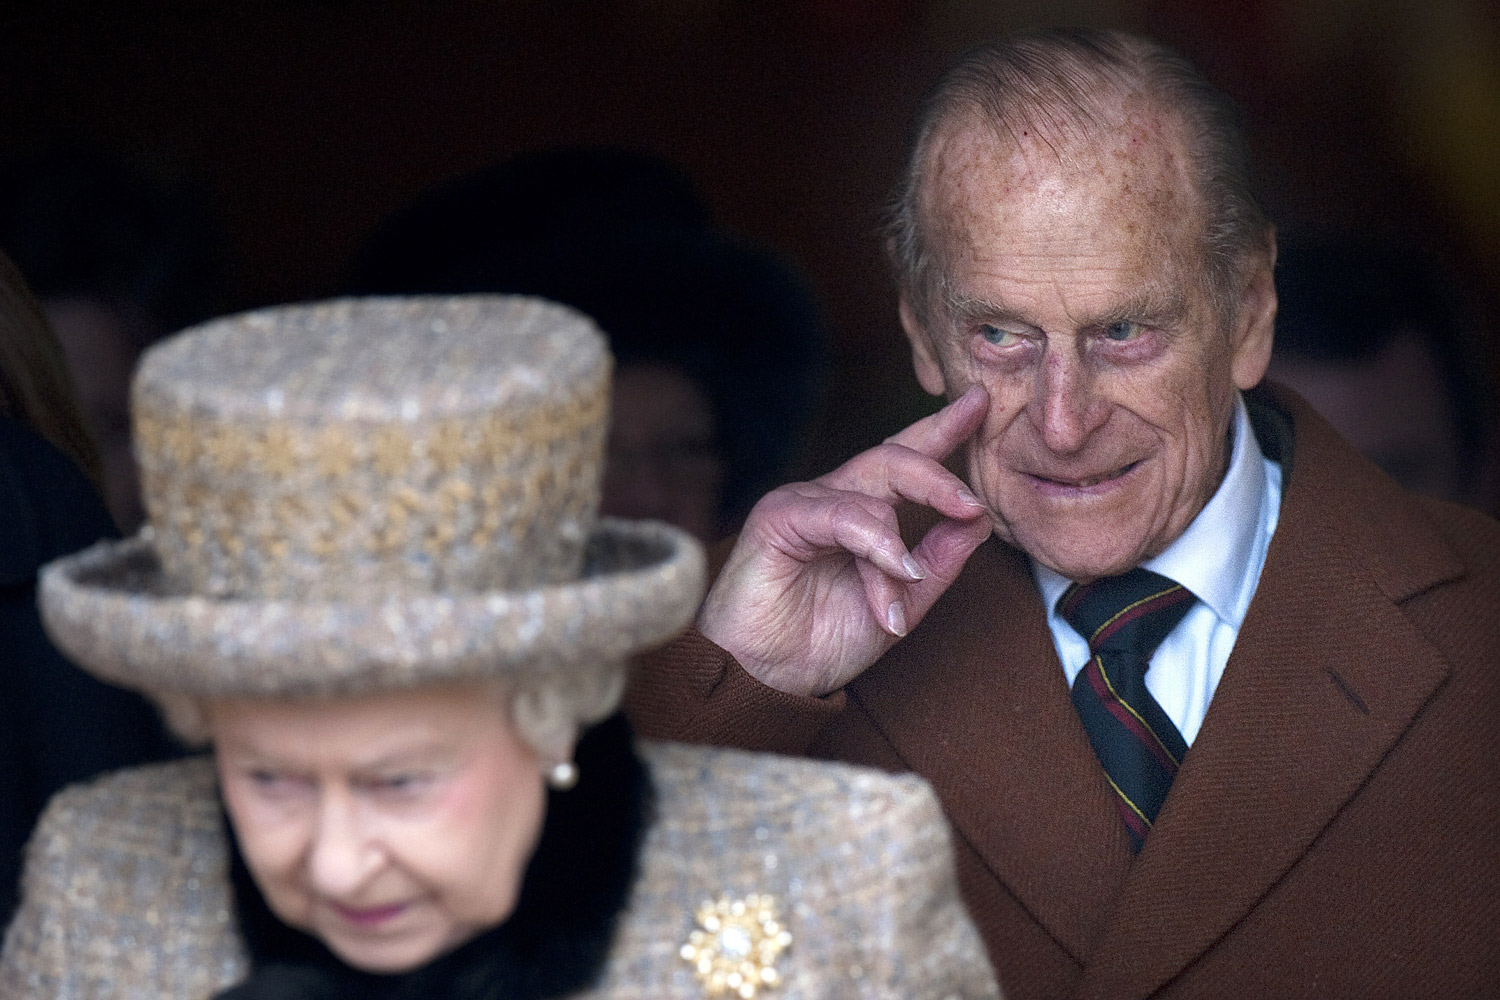 February 5, 2012. Britain's Queen Elizabeth II (L) and The Duke of Edinburgh leave a church service at St. Peters and St. Paul in West Newton, Norfolk. Queen Elizabeth II and her husband Prince Philip braved the snow for a village church service on the eve of the Diamond Jubilee marking 60 years of Elizabeth's reign.